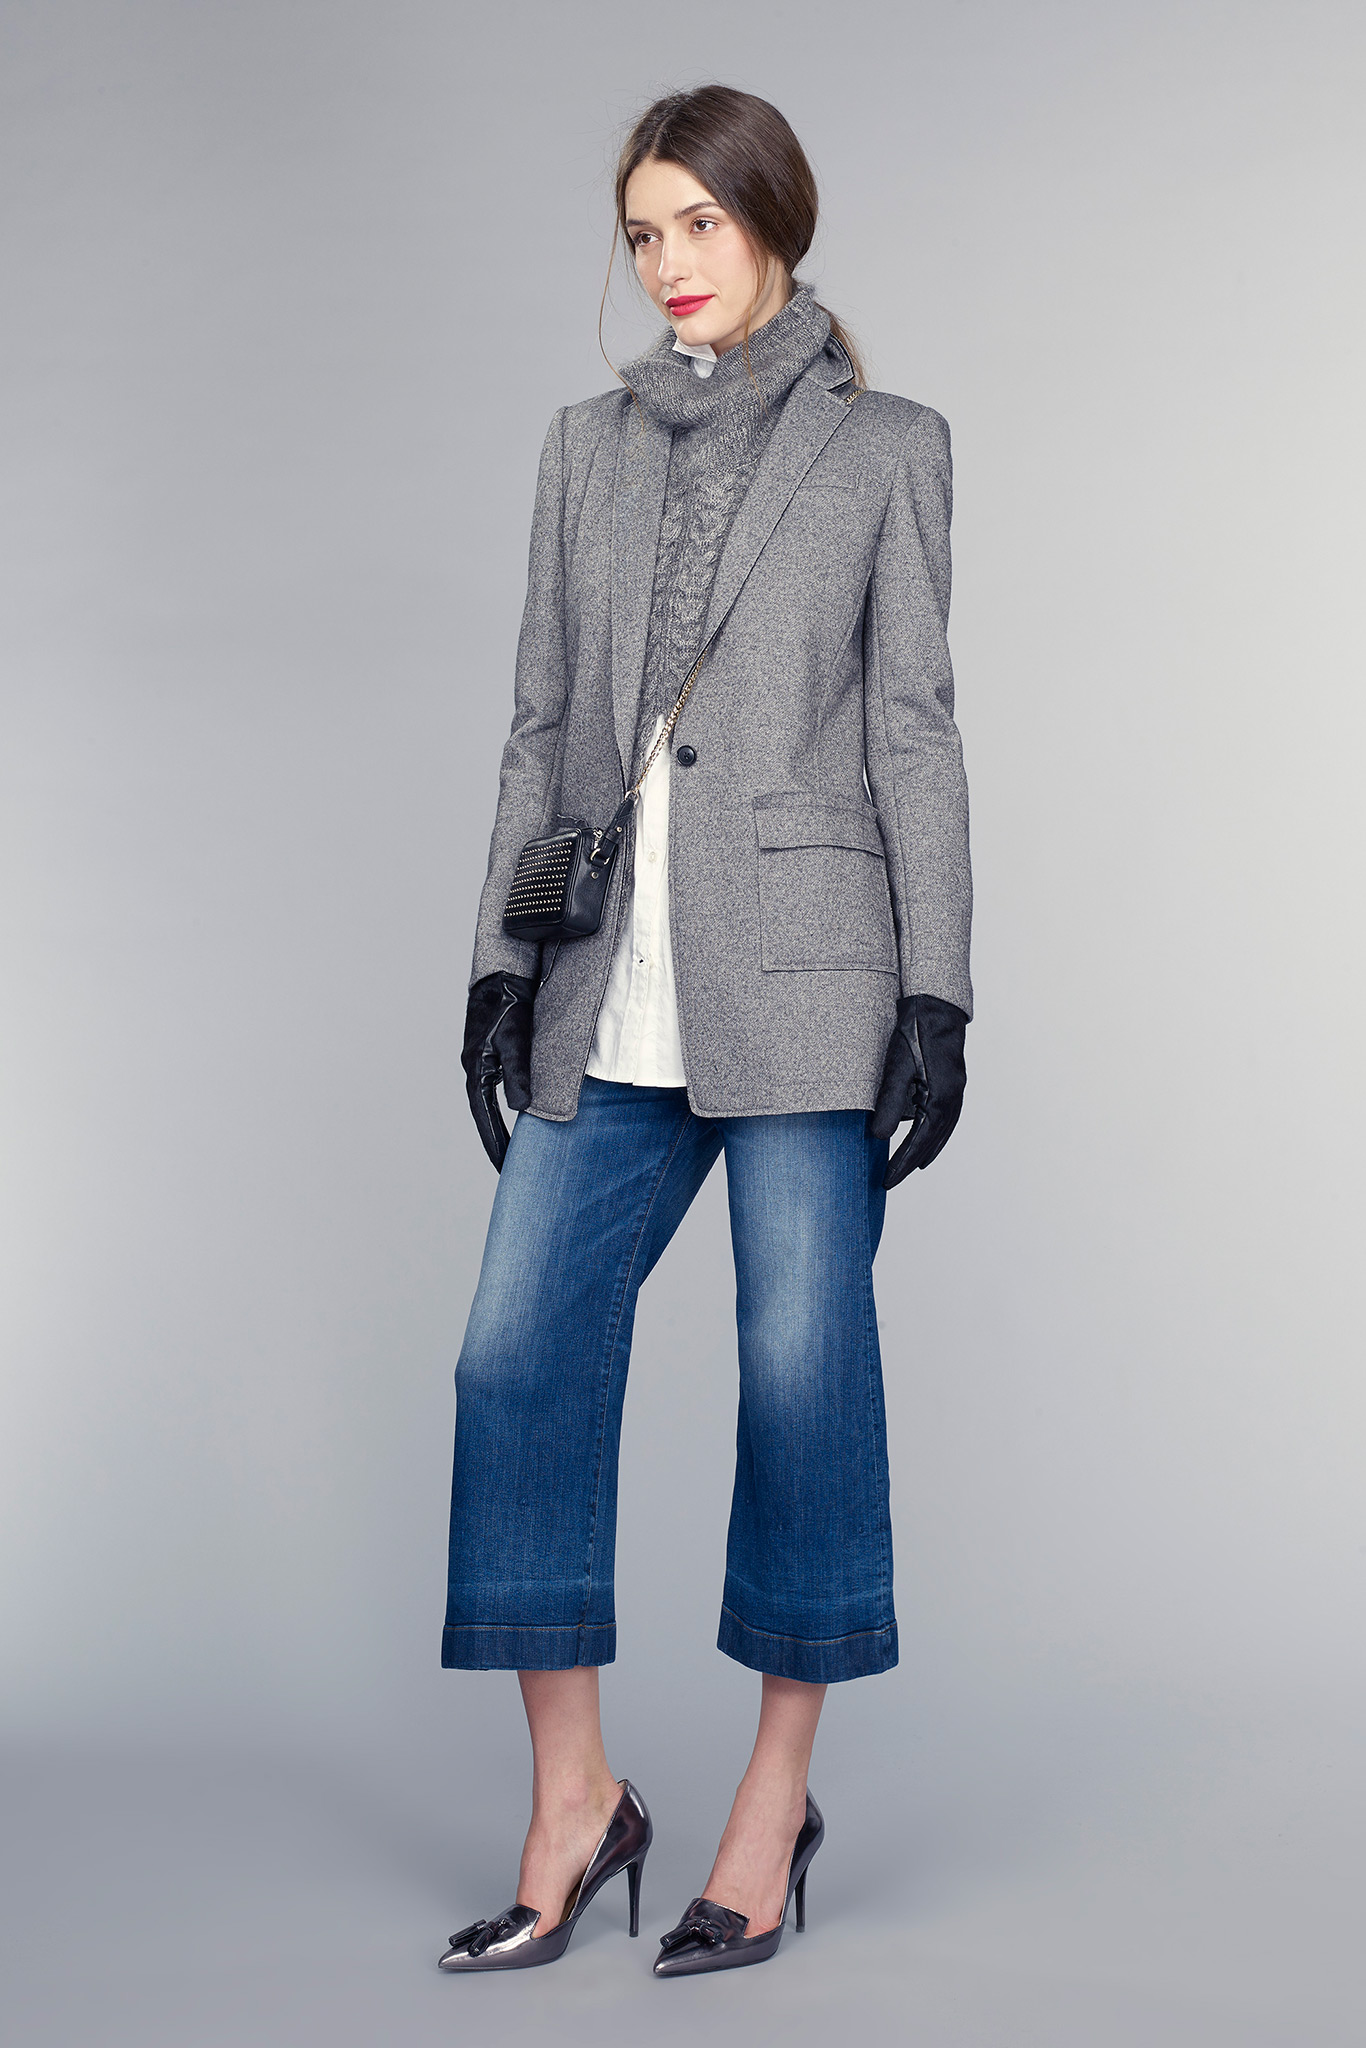 Banana-Republic-Fall-Winter-2015-2016-Womens-Collection-6